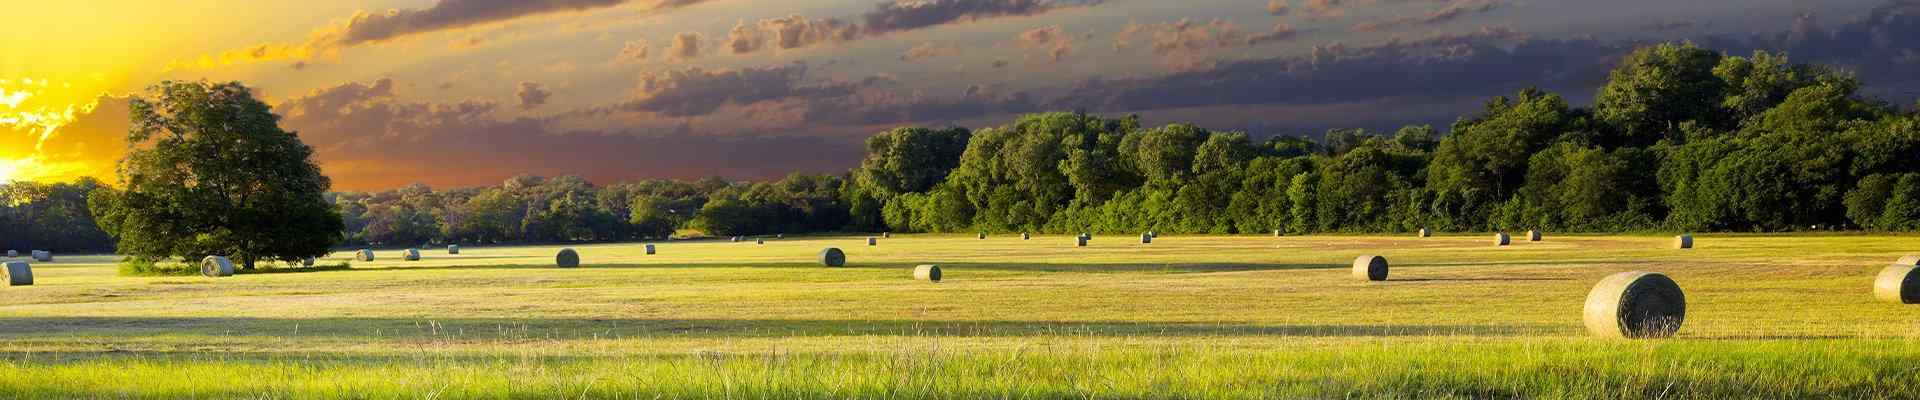 a field with bales of hay in bartonville texas